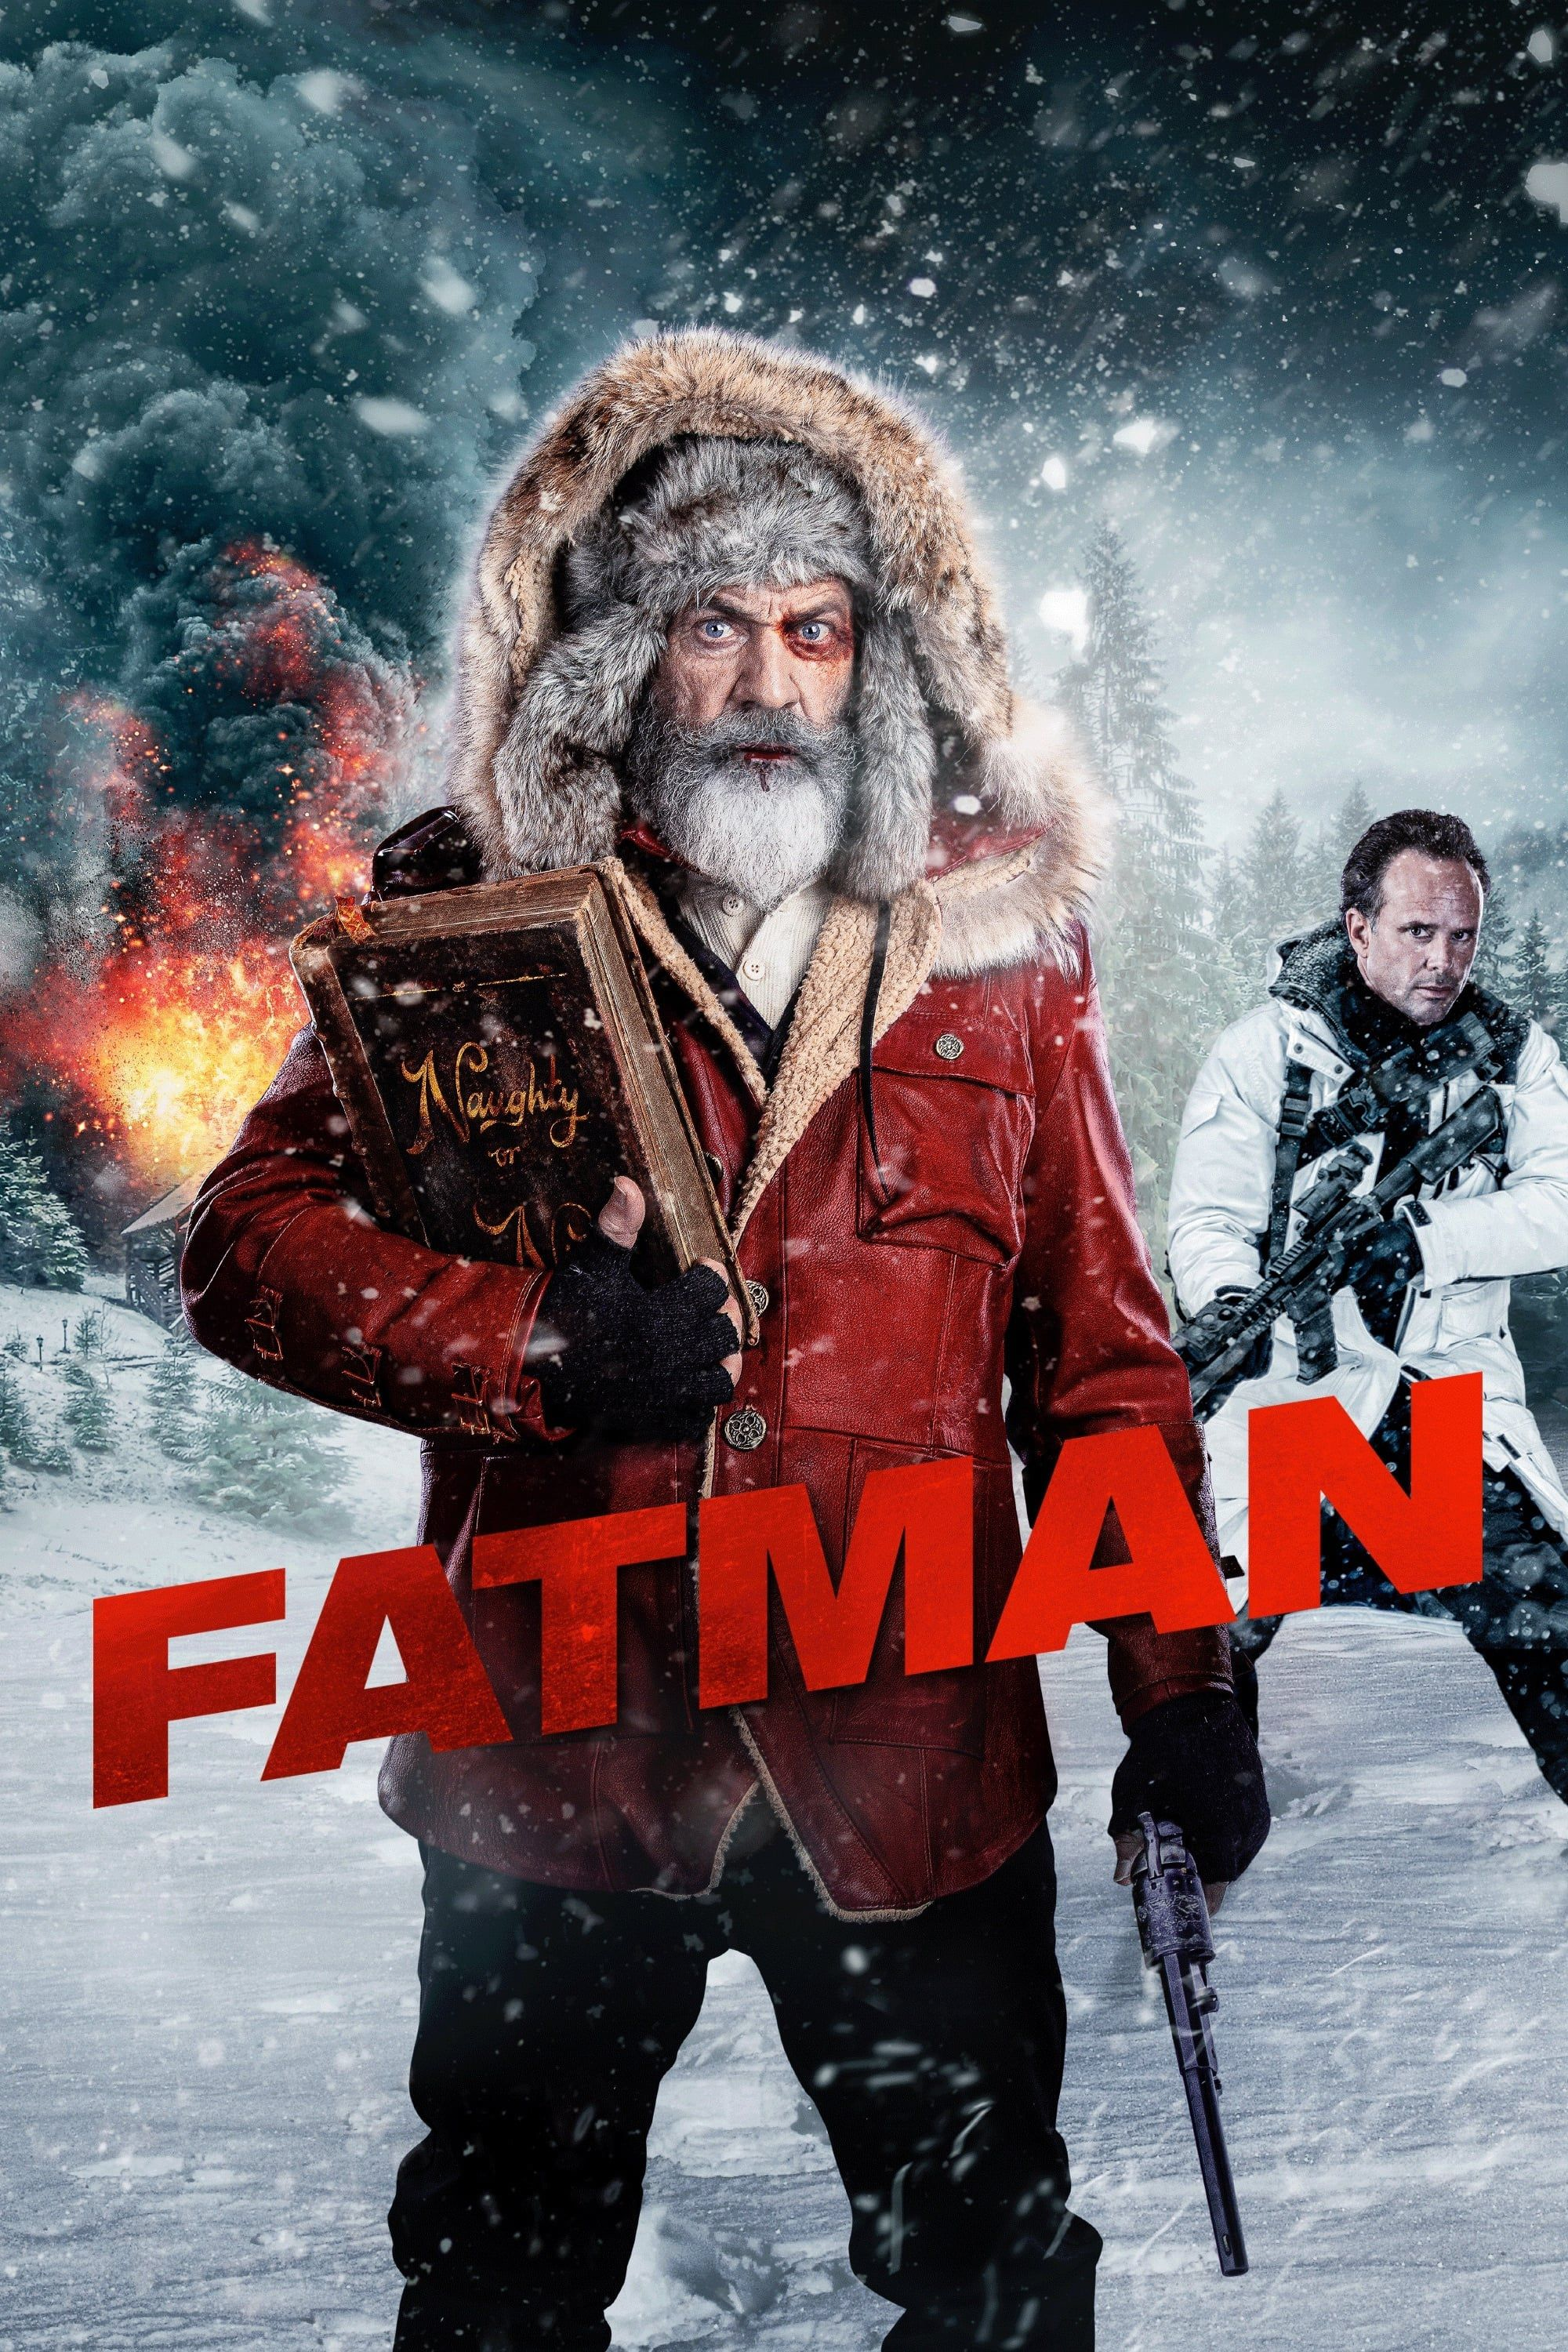 Fatman - Film (2020)